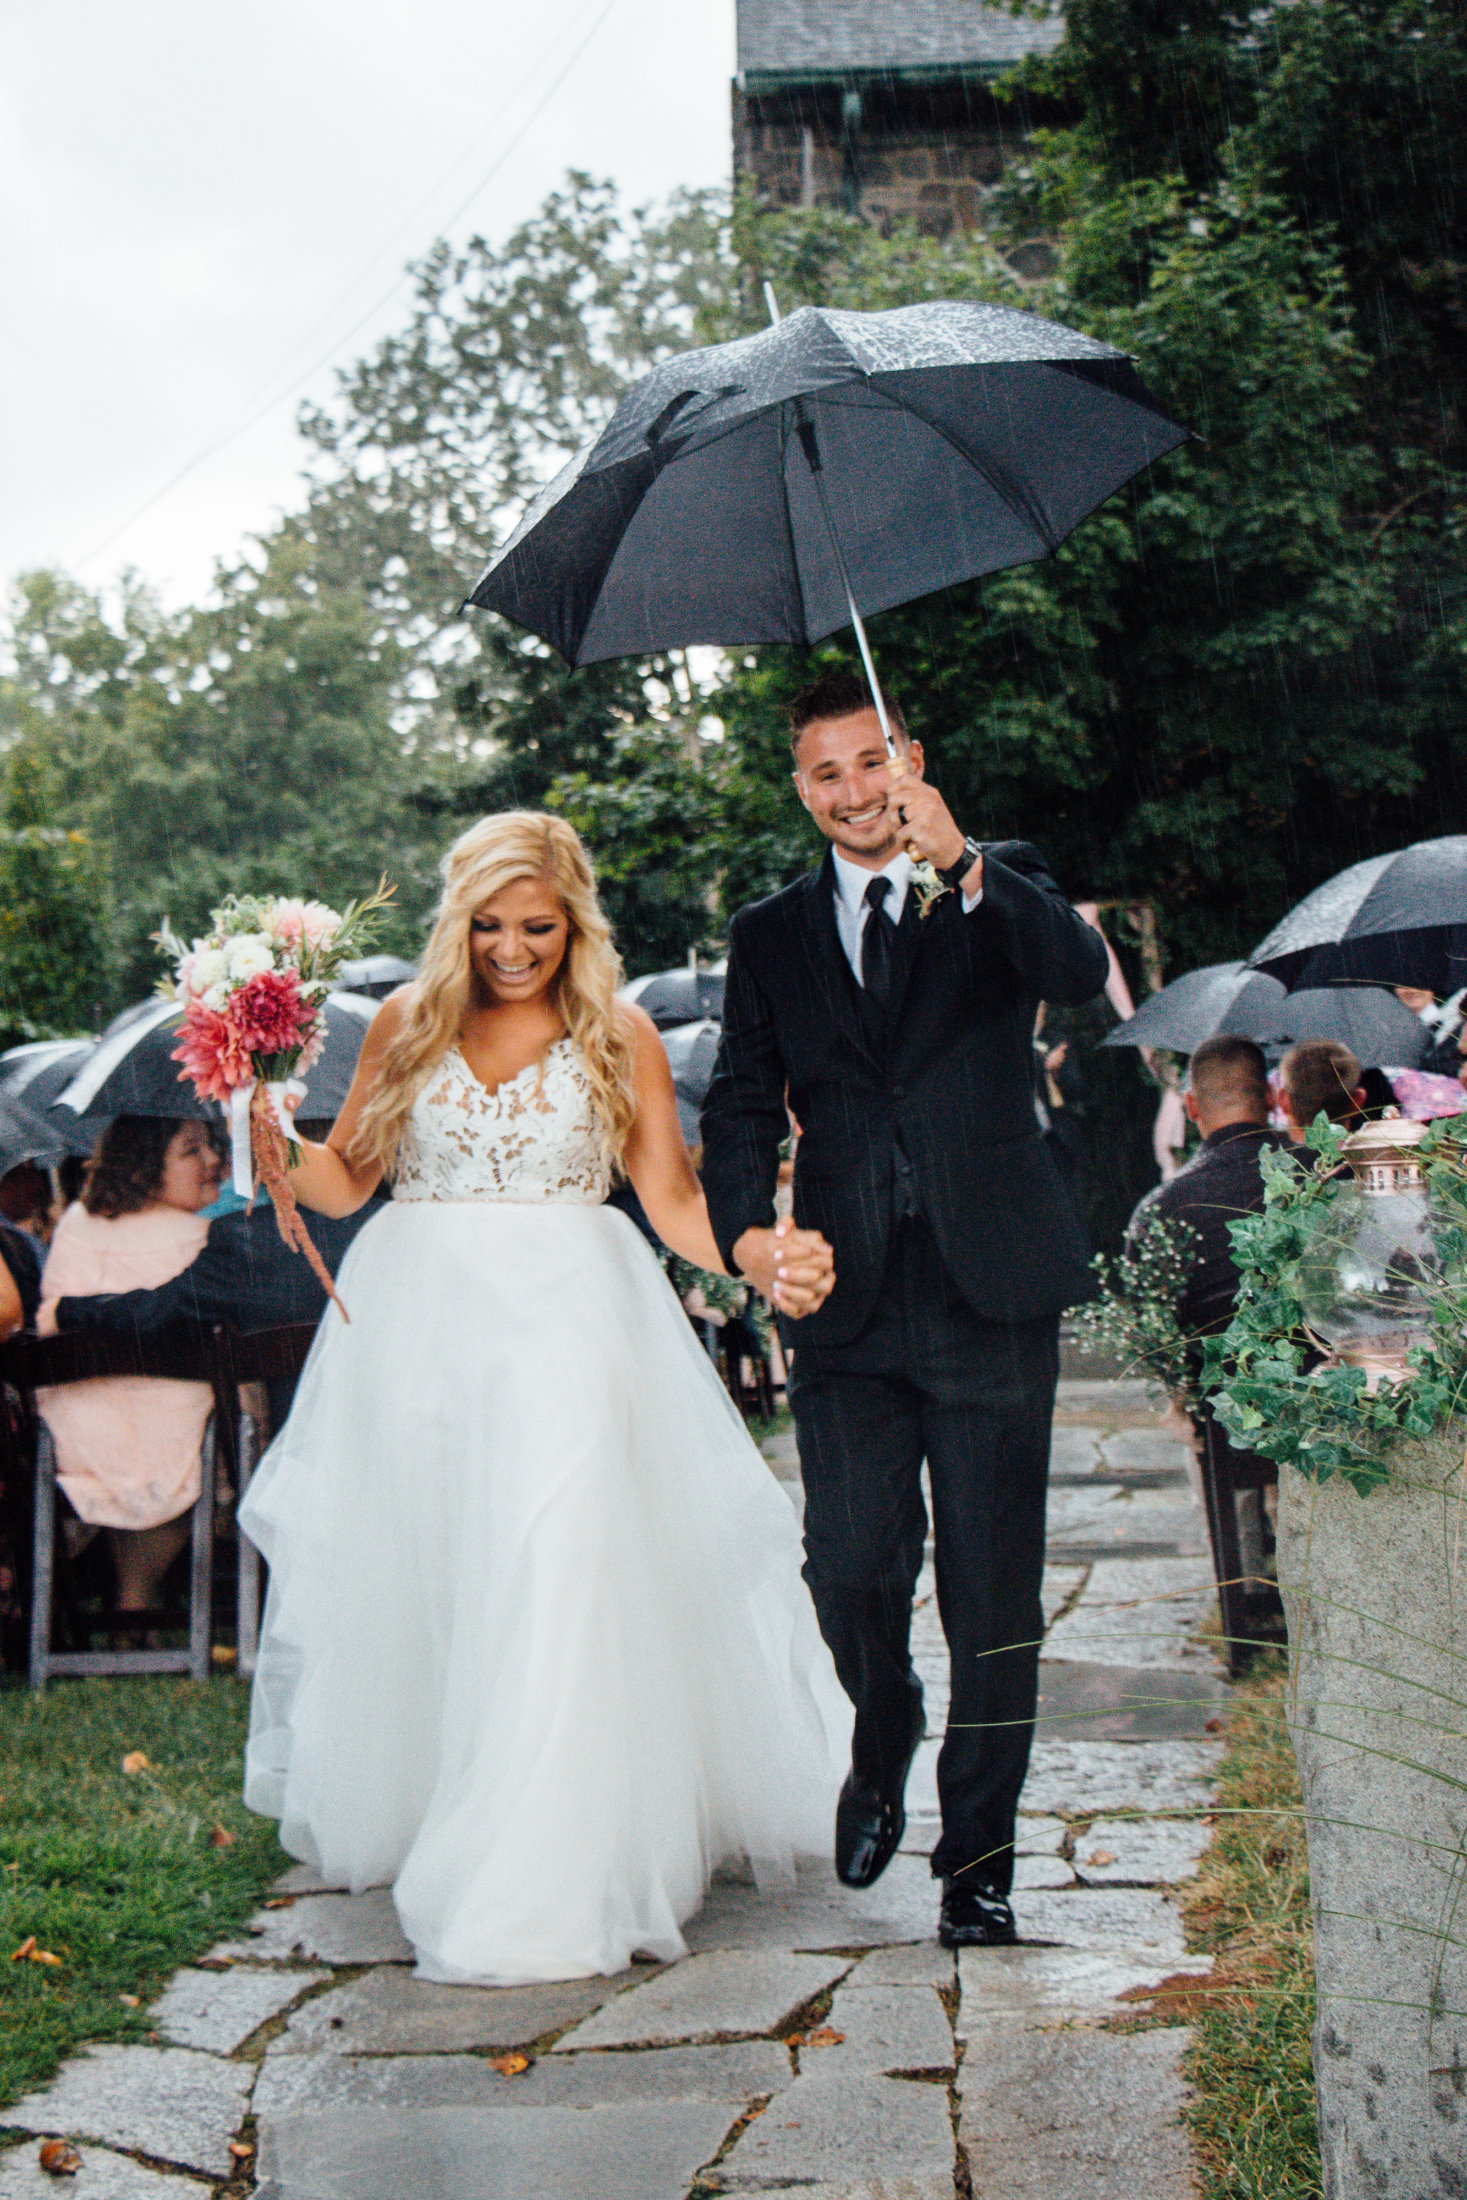 View More: http://twilsonphoto.pass.us/morganandseth